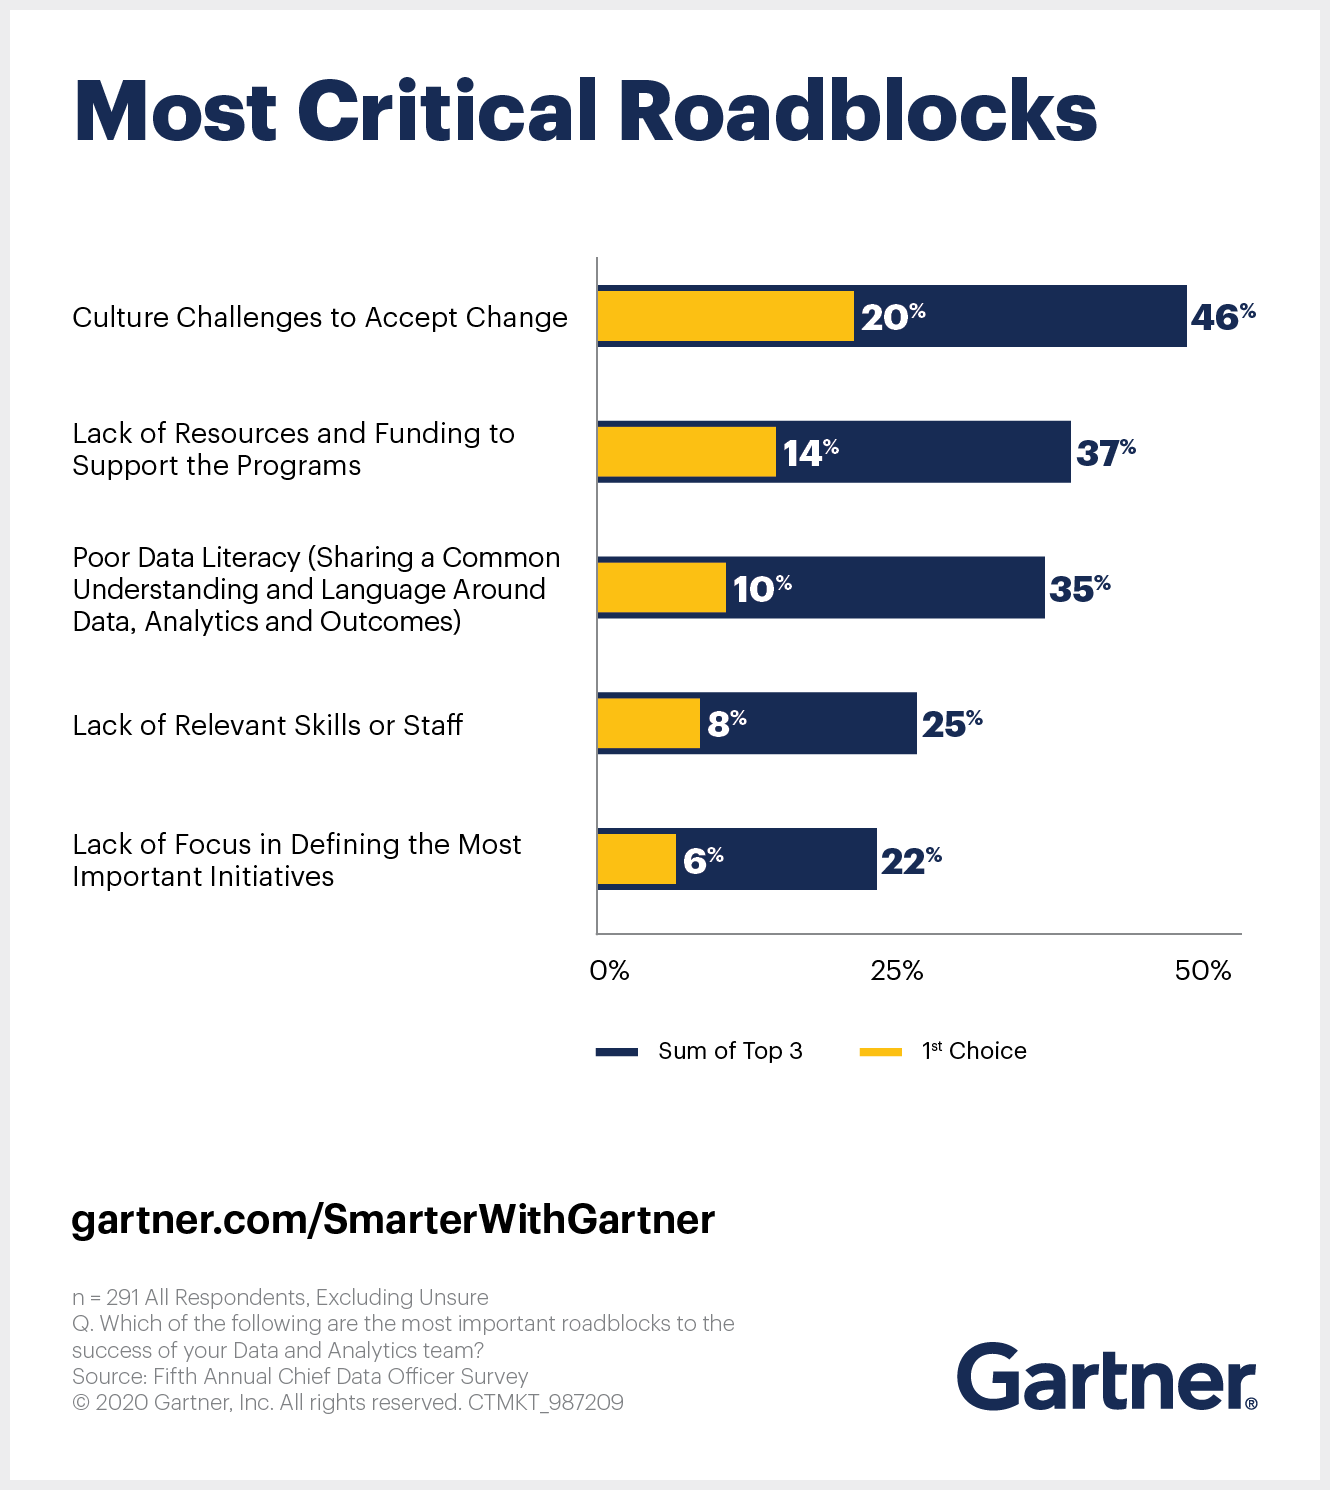 Gartner outlines five critical roadblocks that chief data officers are likely to encounter when establishing data and analytics as a strategic discipline within their organization.